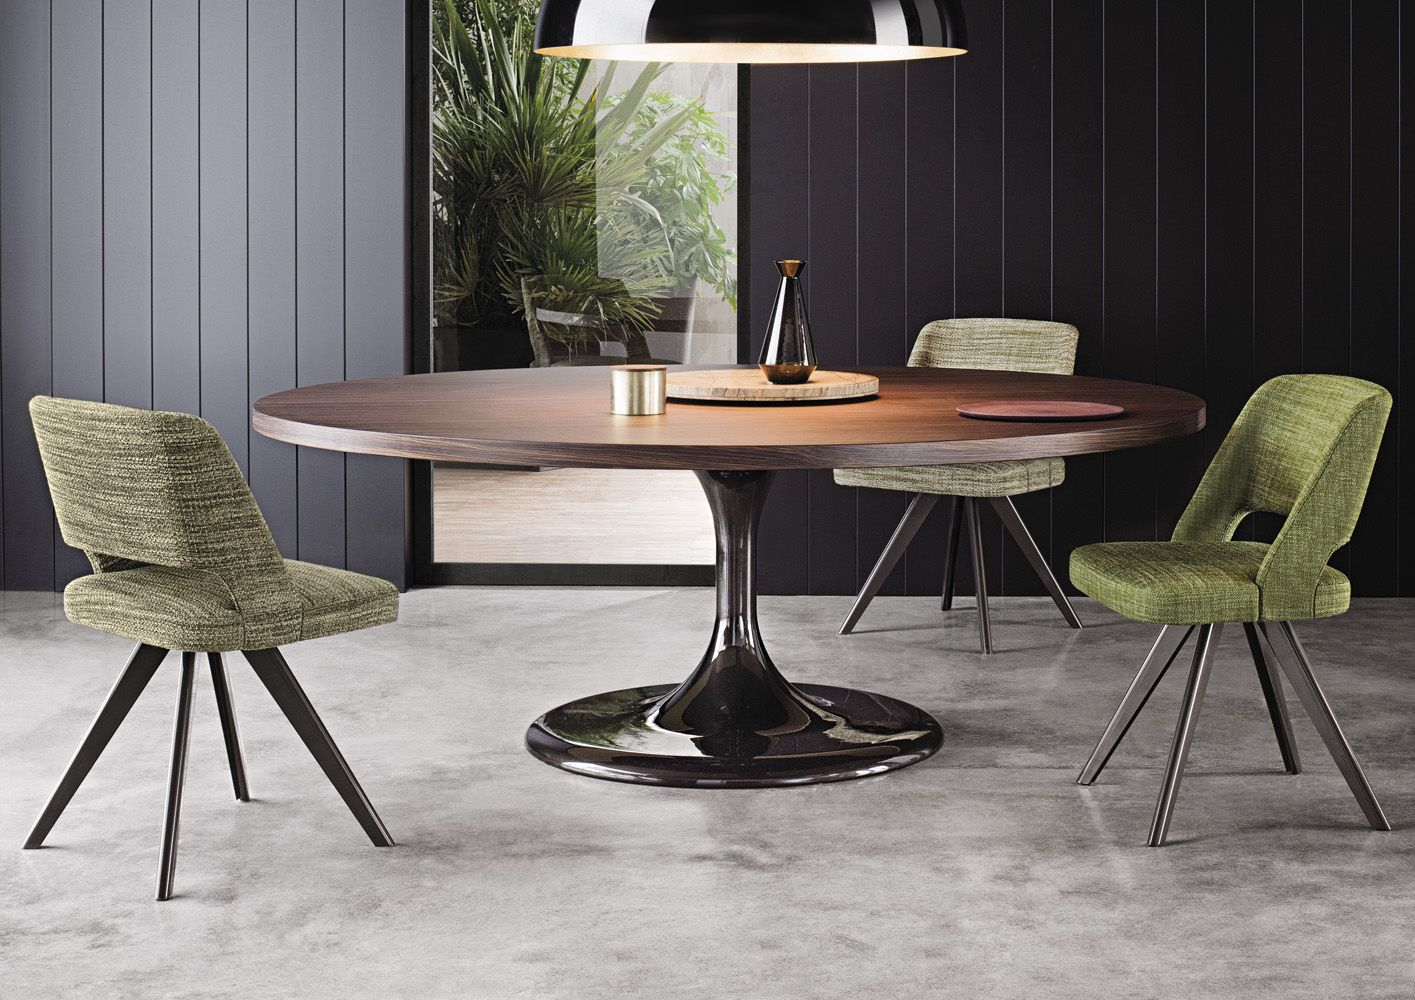 Home U0026 Apartment, Round Dining Table With Contemporary Furniture Decor Room  Design Plus Green Side Chair With Big Bowl Black Pendant And Floor Cement:  ...